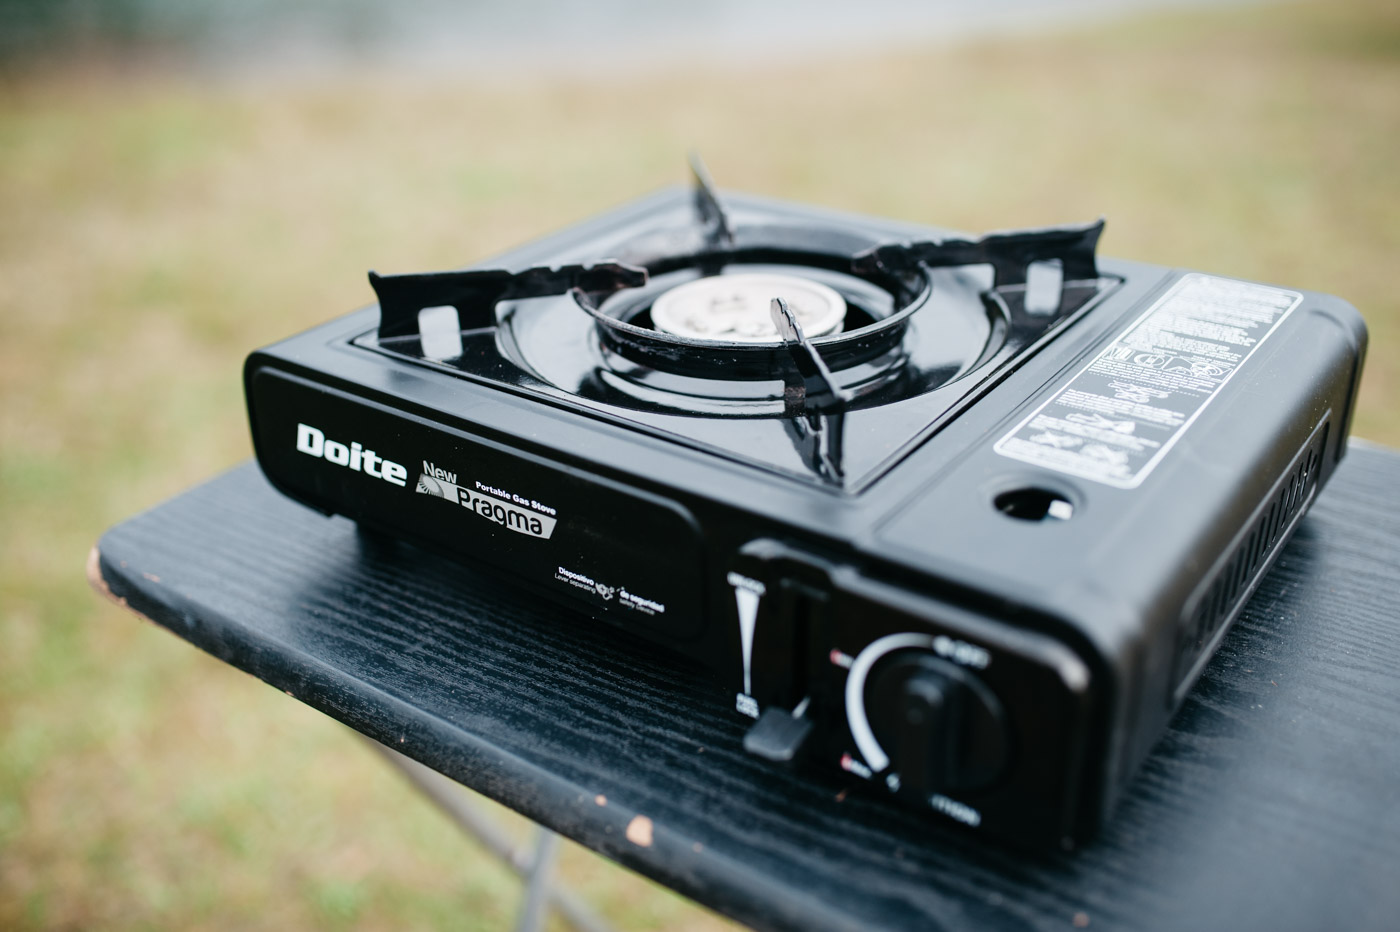 Wicked SouthAmerica Campervan Review-Camping Stove